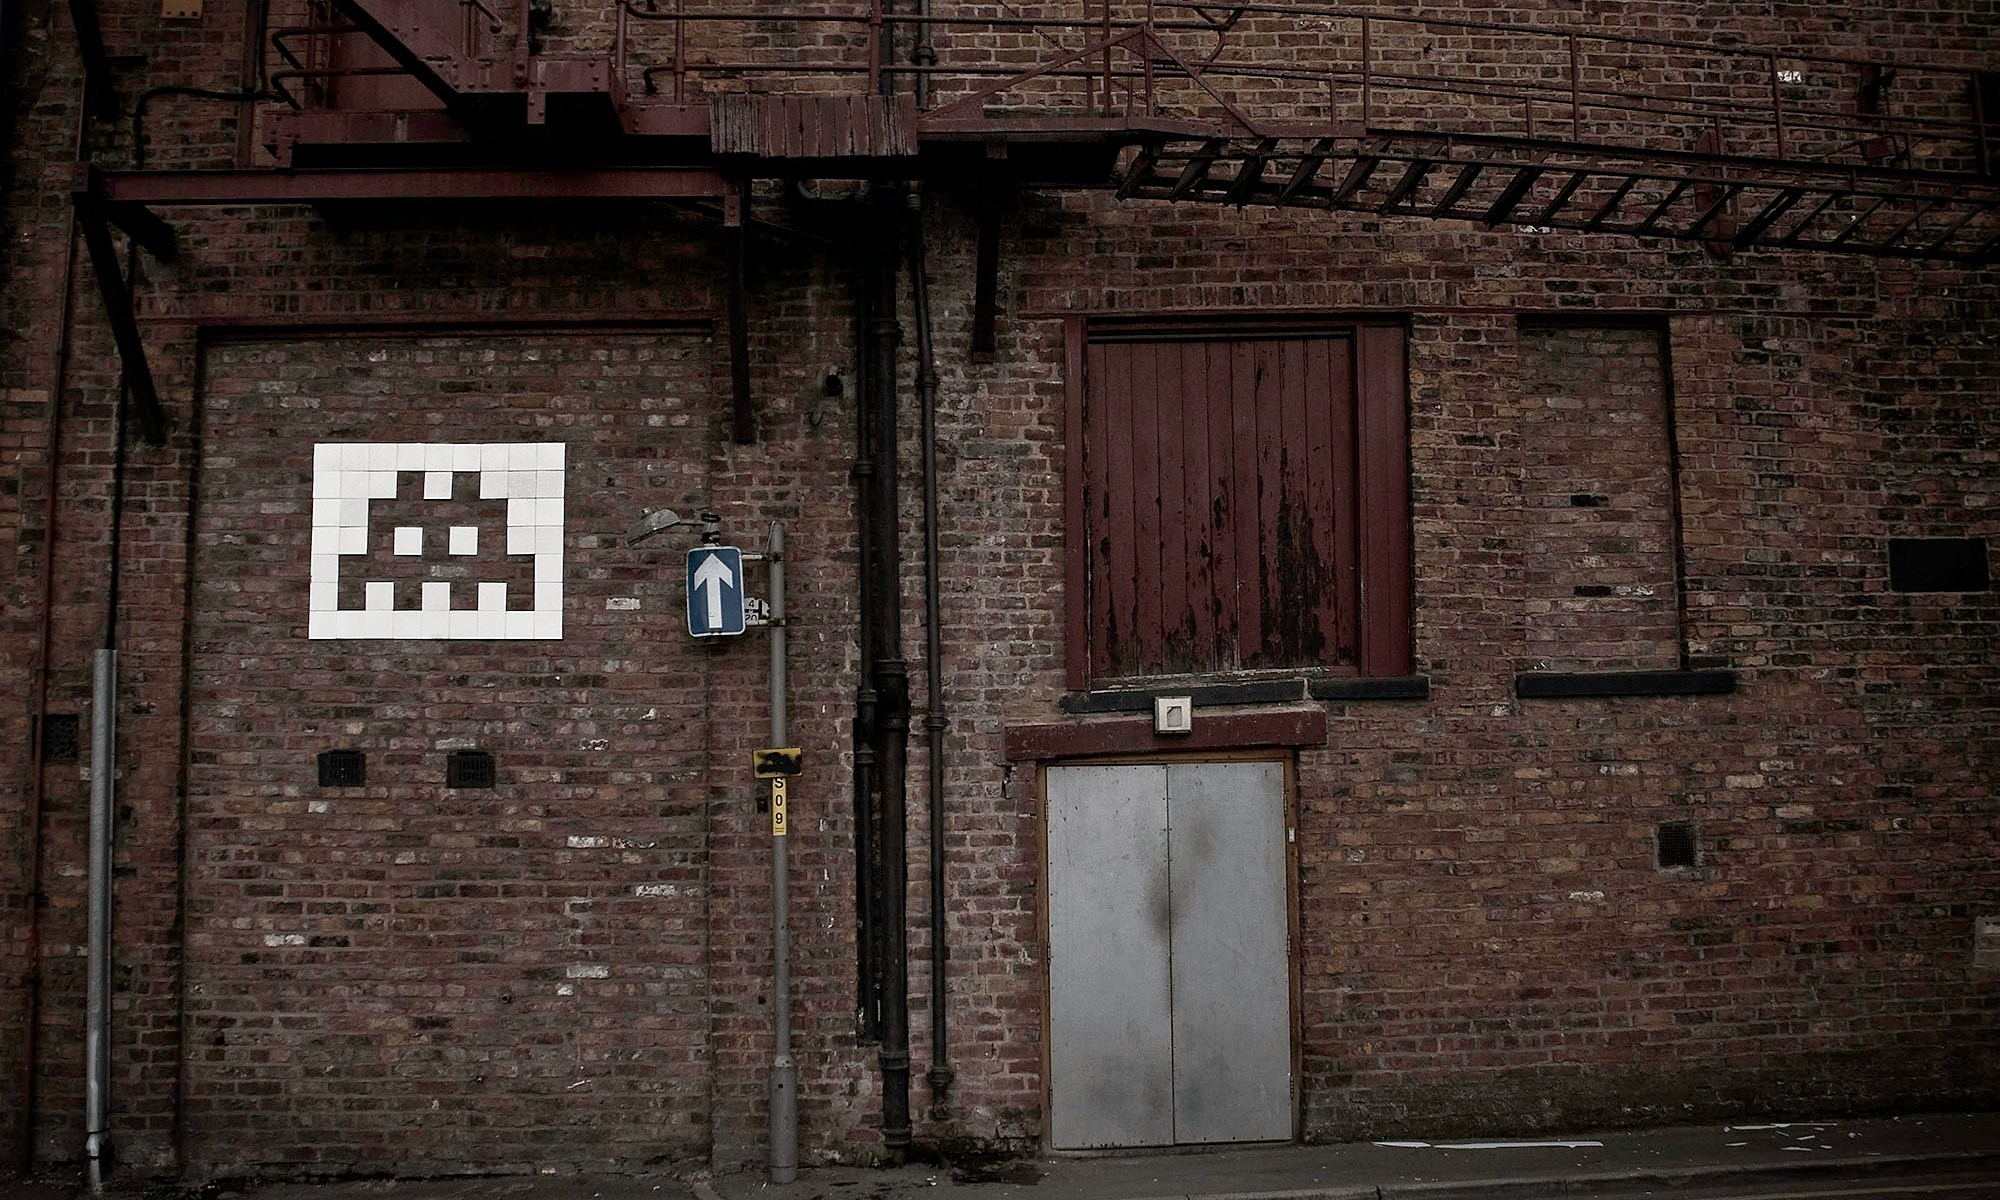 Space Invader Graffiti, Manchester